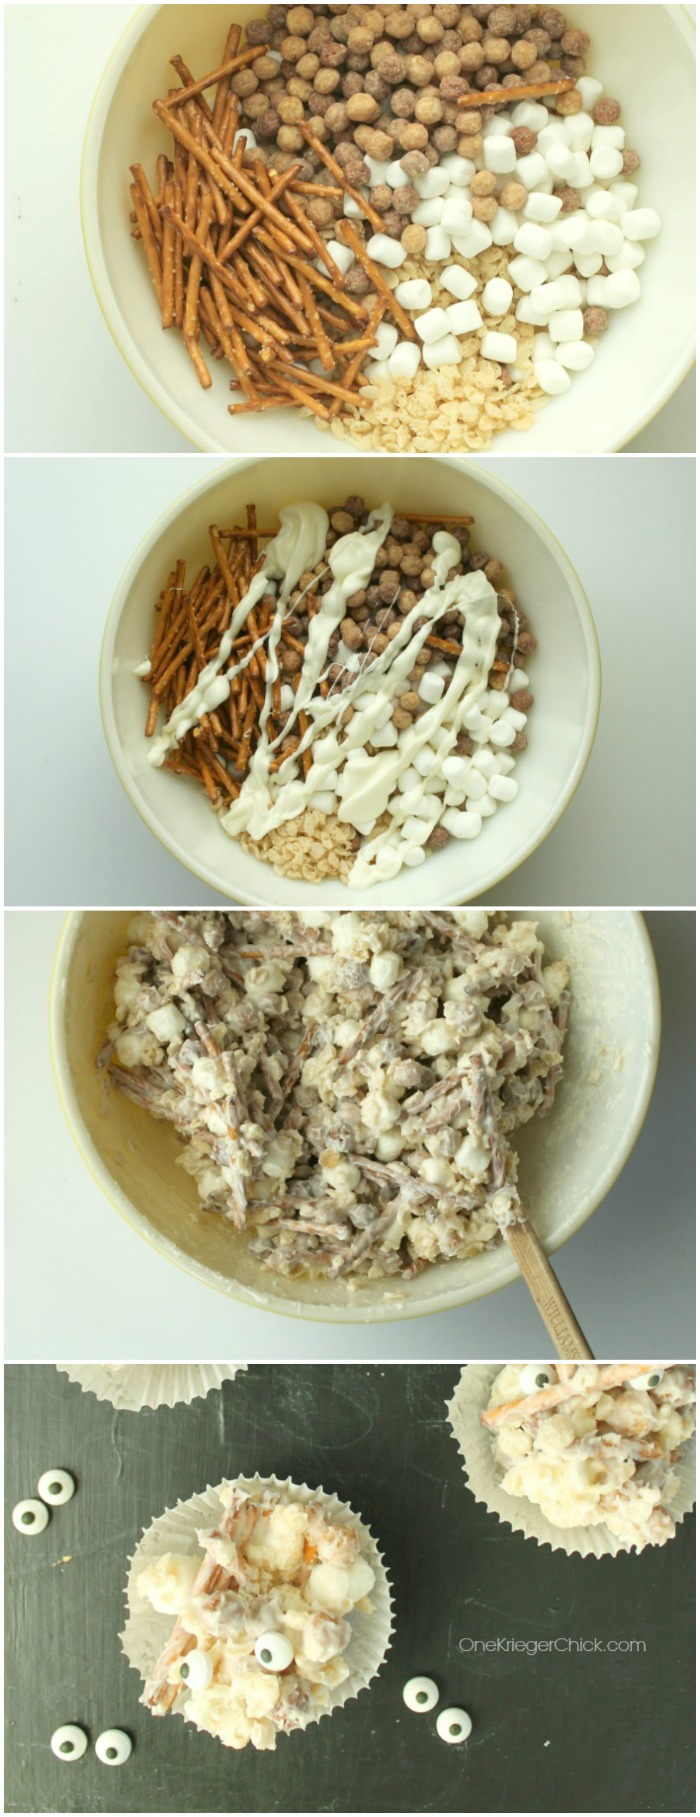 Quick and easy Mummy Munch Mix-Perfect for a Halloween Party! OneKriegerChick.com